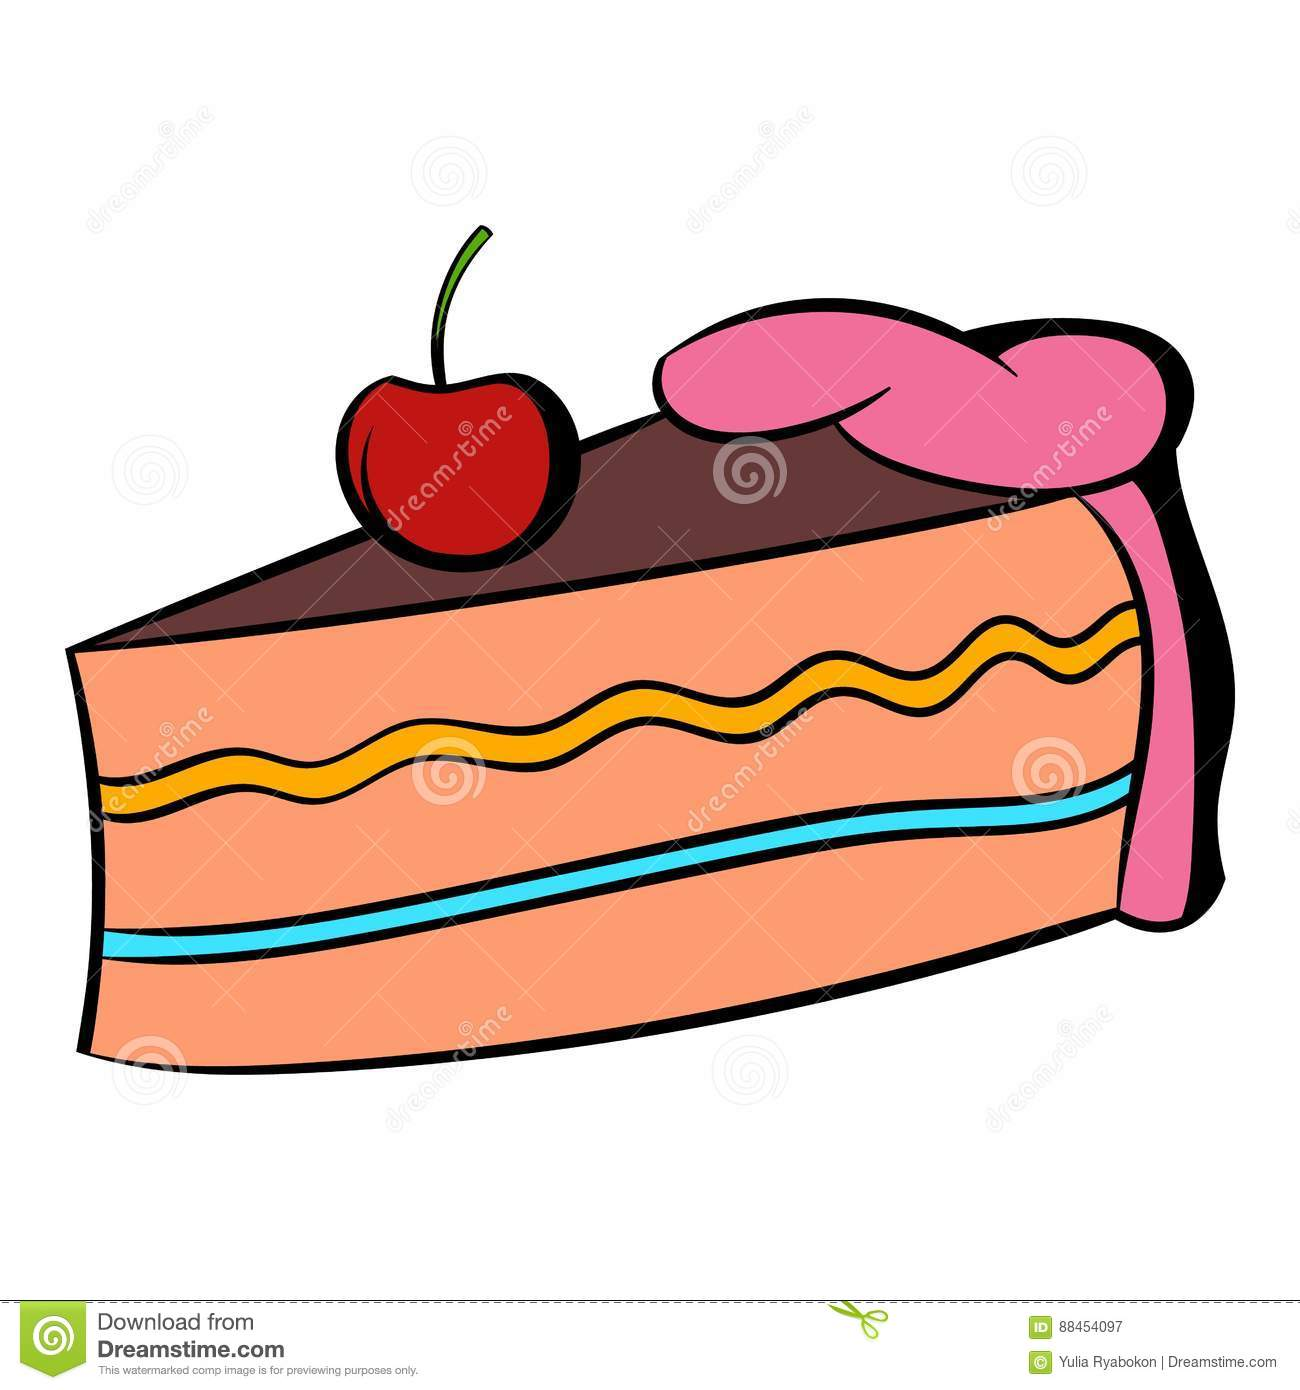 Piece Of Cake Icon Cartoon Stock Vector Illustration Of Brown